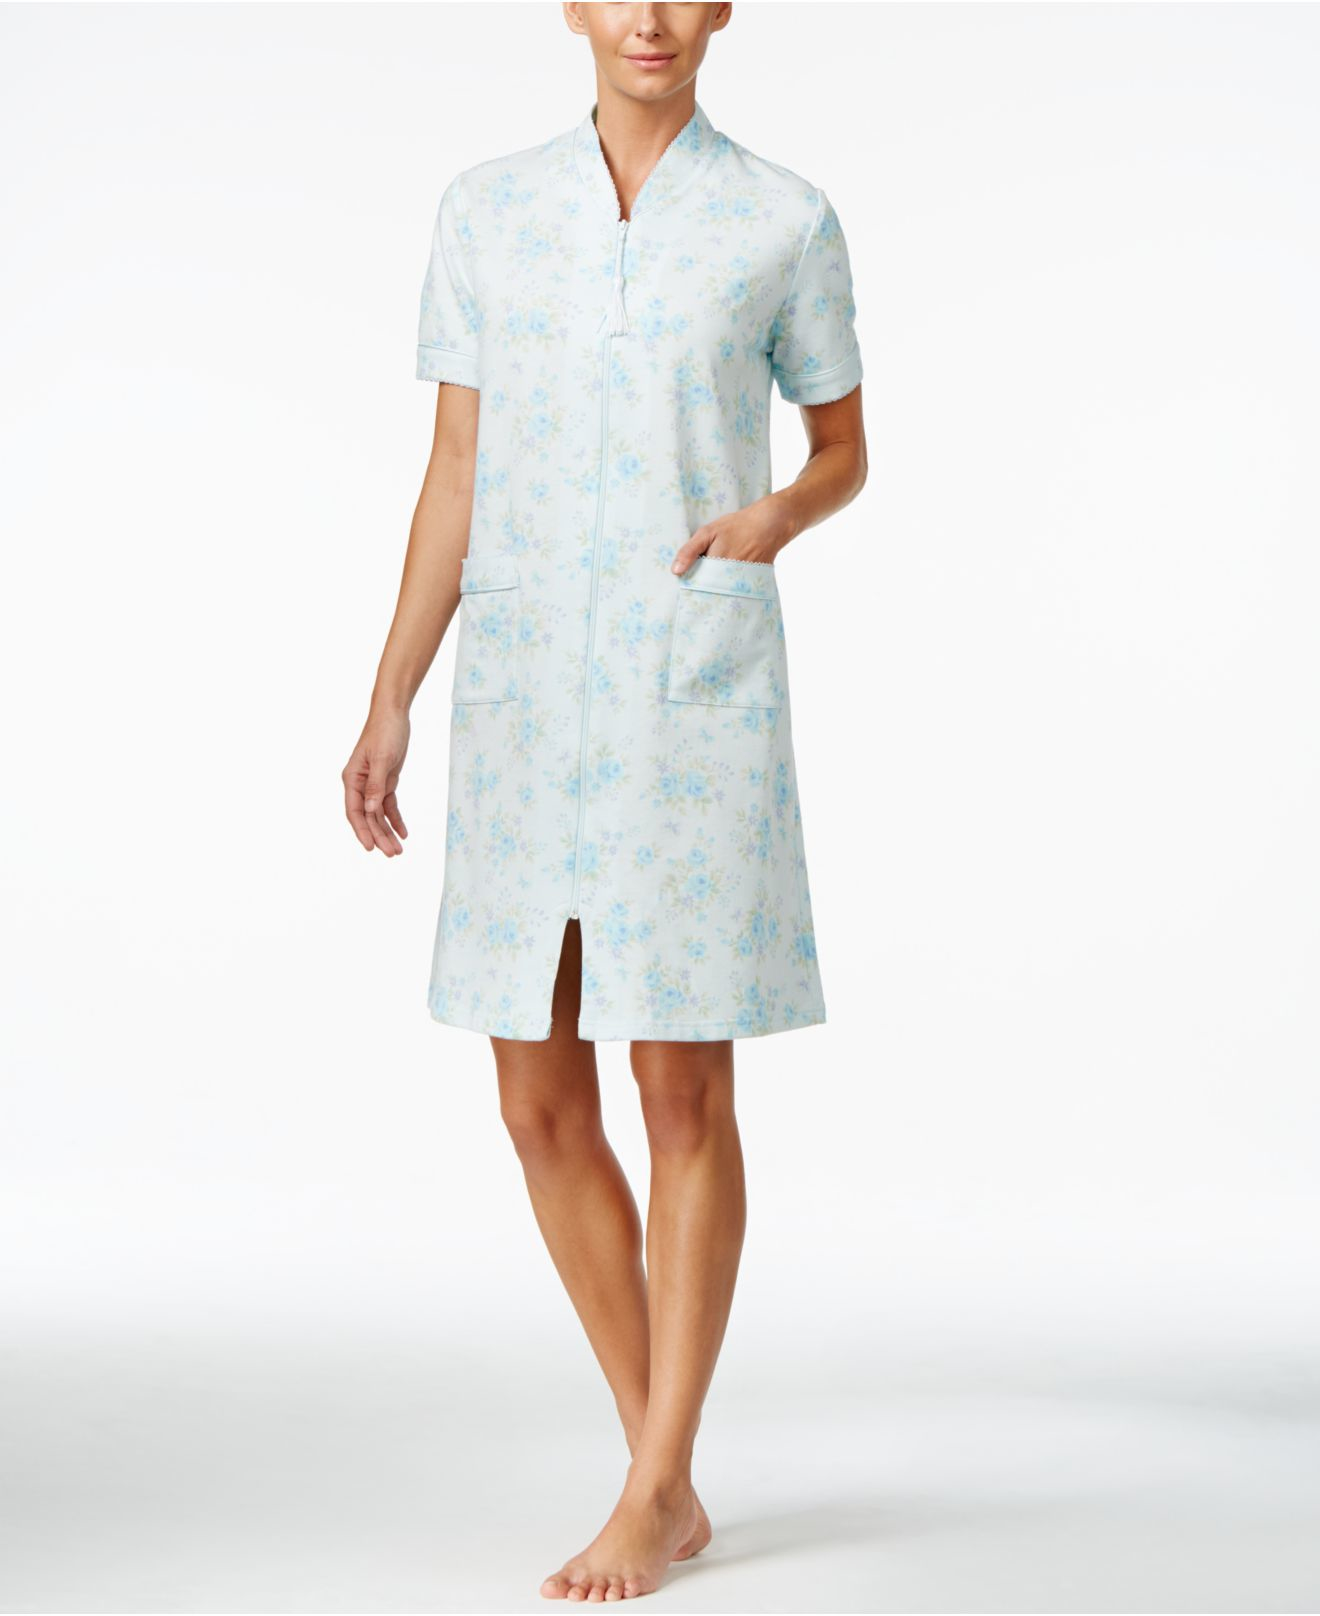 8042f64a2e Lyst - Miss Elaine Zip-up Floral-print Short Sleeve Robe in White